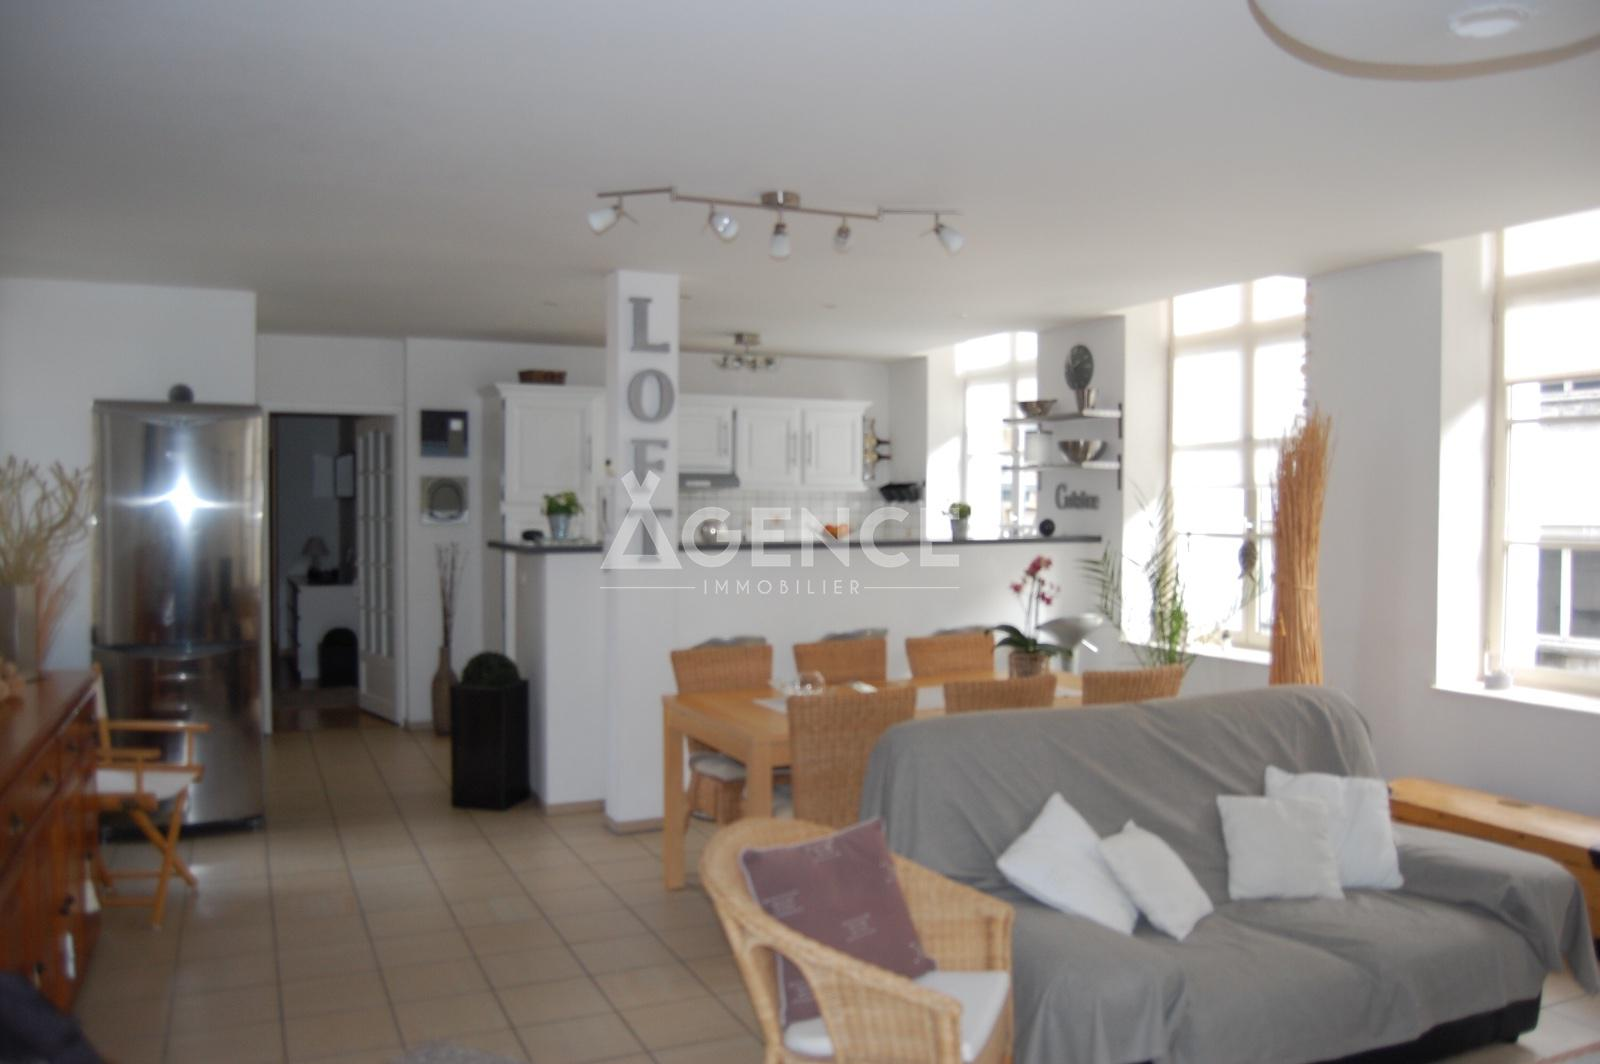 APPARTEMENT T4 A VENDRE - ST OMER - 100 m2 - 157 500 €